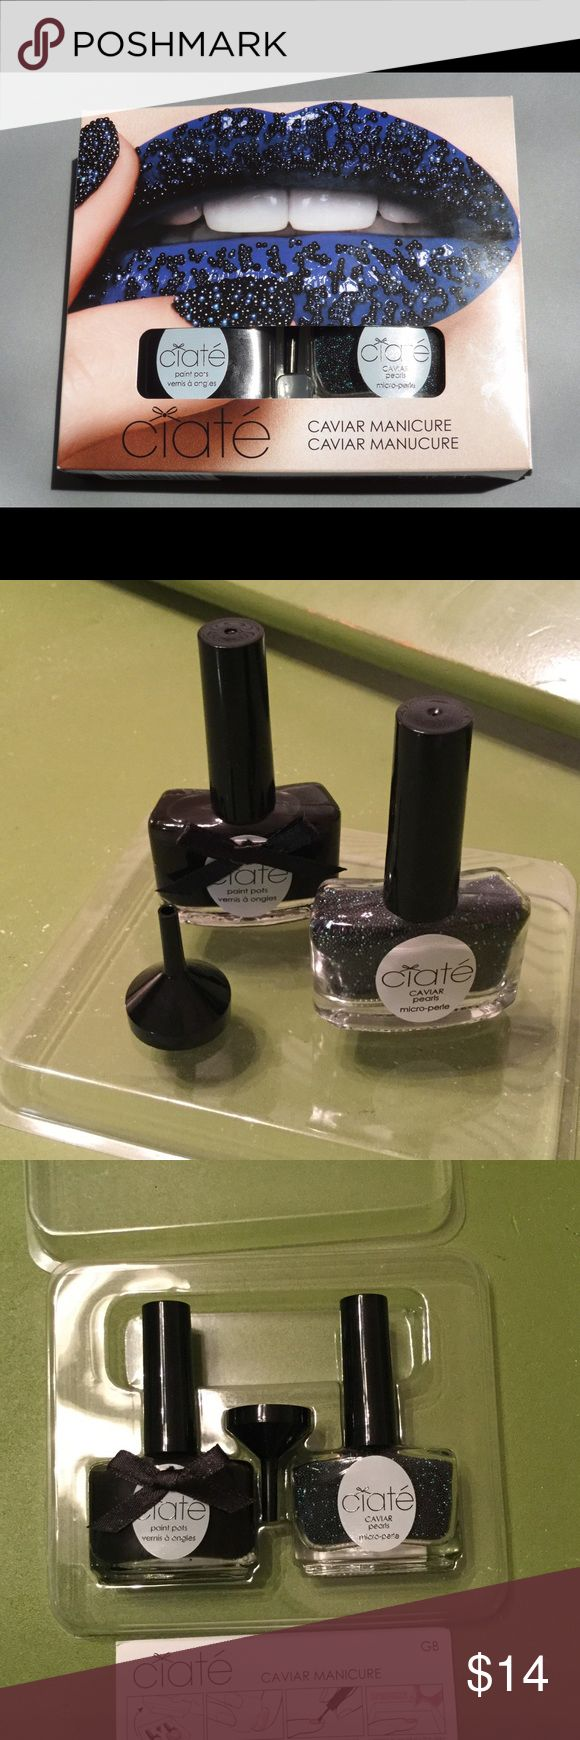 Ciate Black Pearls & Opaque Black Caviar Manicure Ciate Black Pearls & Opaque Black Caviar Manicure. Used ONE time! Comes with all packaging and instructions minus the outside cardboard box. Wore it to a formal and loved it! Ciate Other